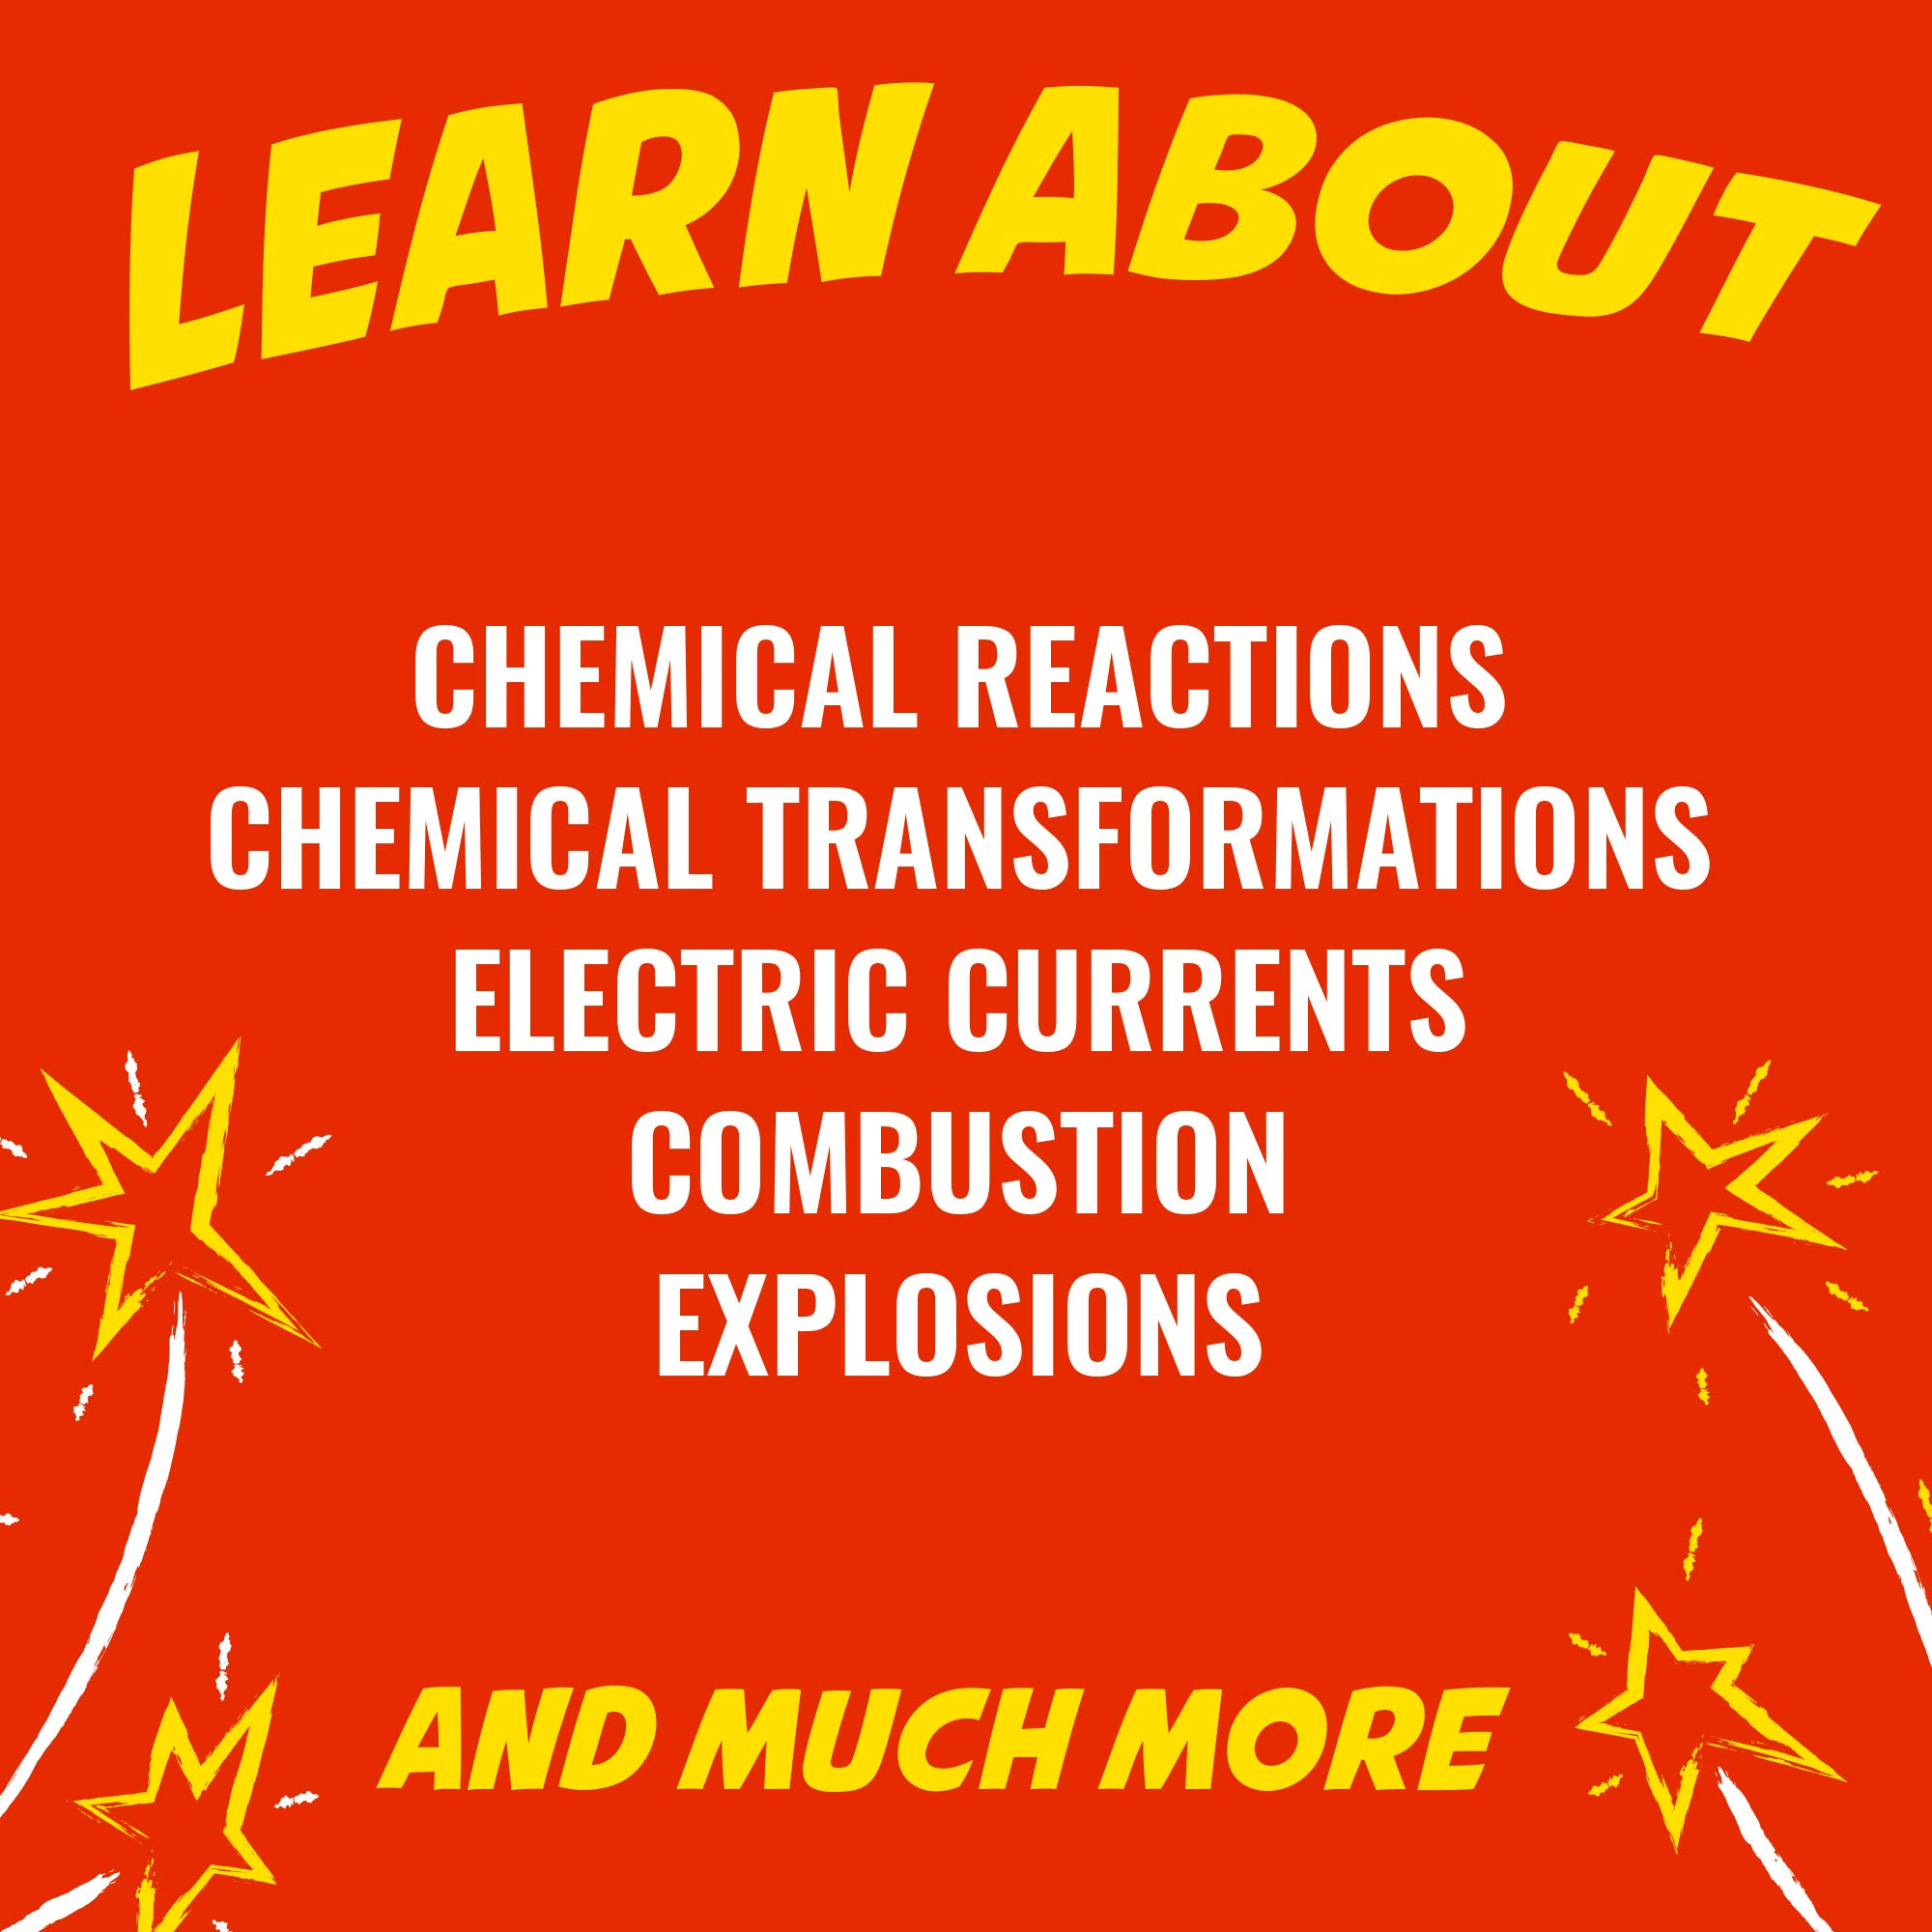 Playz Kaboom! Explosive Combustion Science Lab Kit - 25+ STEM Experiments - DIY Make Your Own Rockets, Helium Balloons, Fizzy Bombs, Color Explosions and More with Fun Chemical Reactions! by Playz (Image #3)